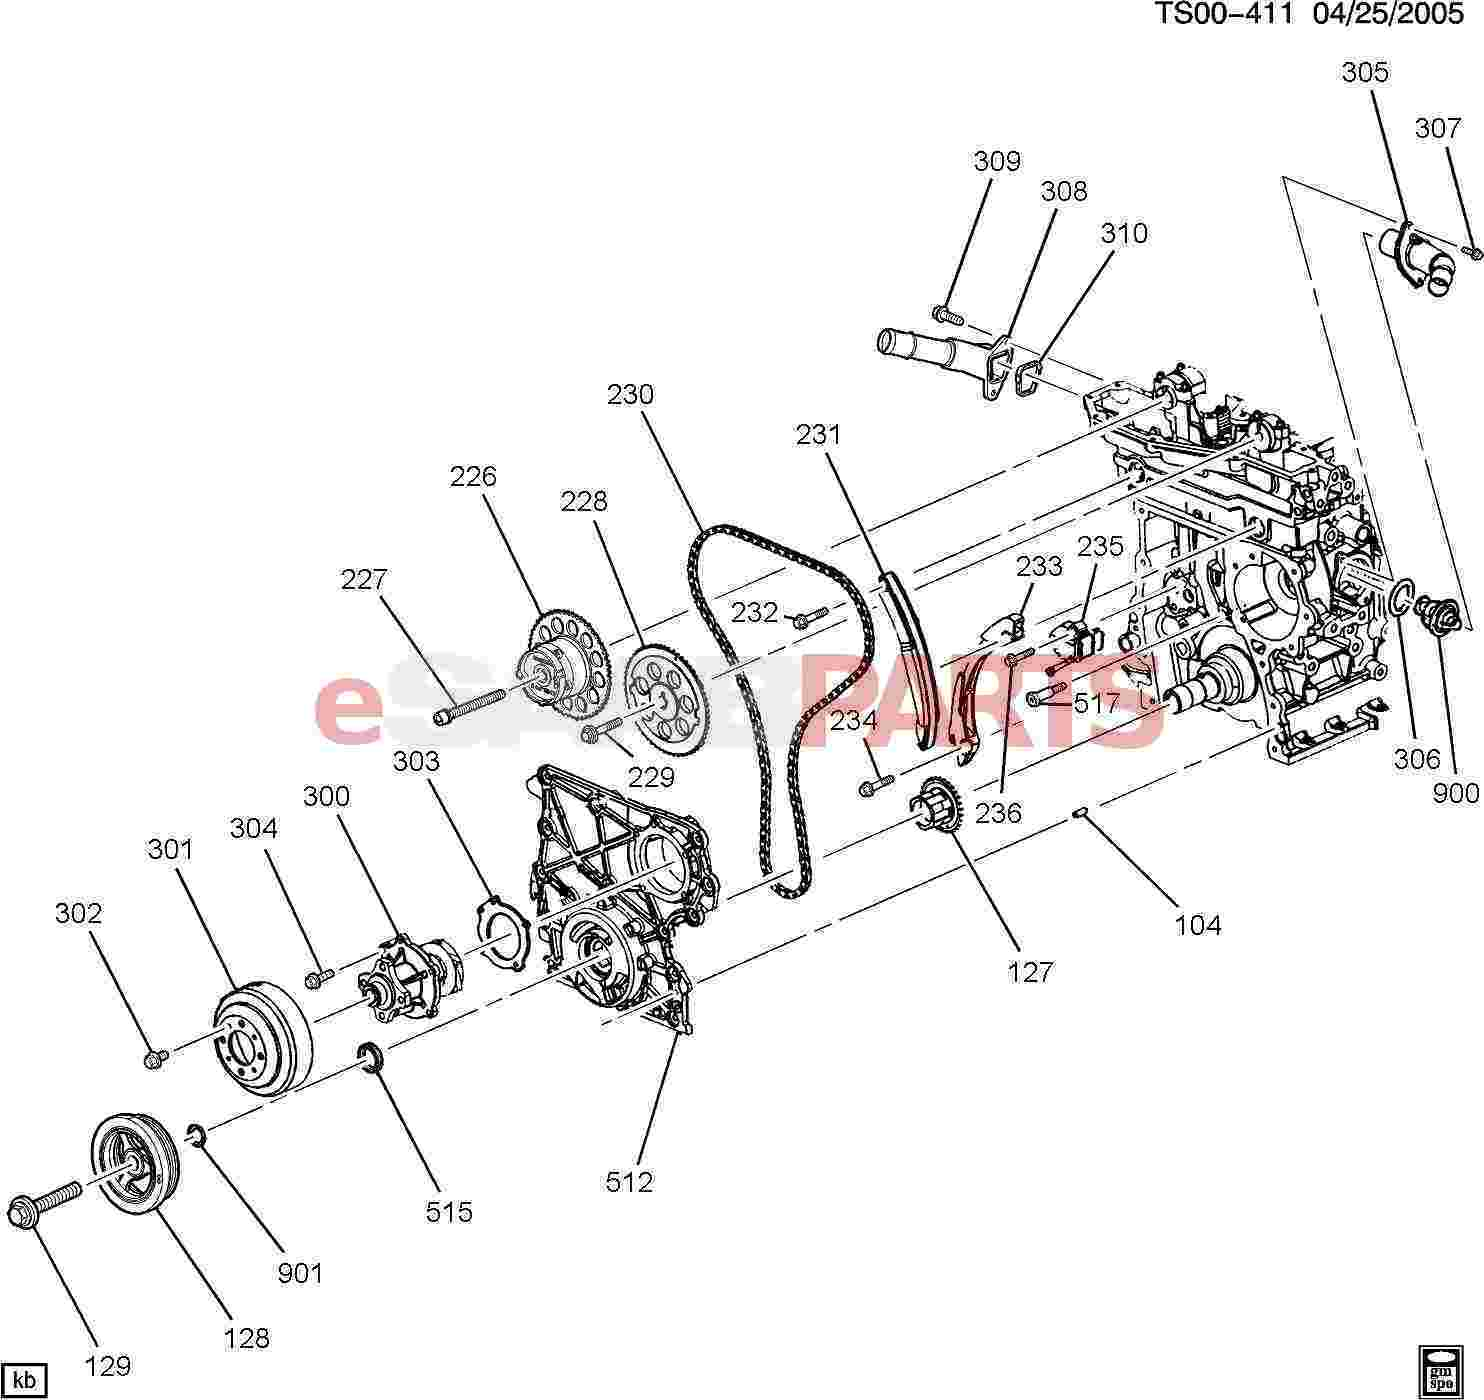 12578073 Saab Washer Cr Shf Balr Genuine Parts From 1999 Chevy Monte Carlo Engine Diagram Image 901